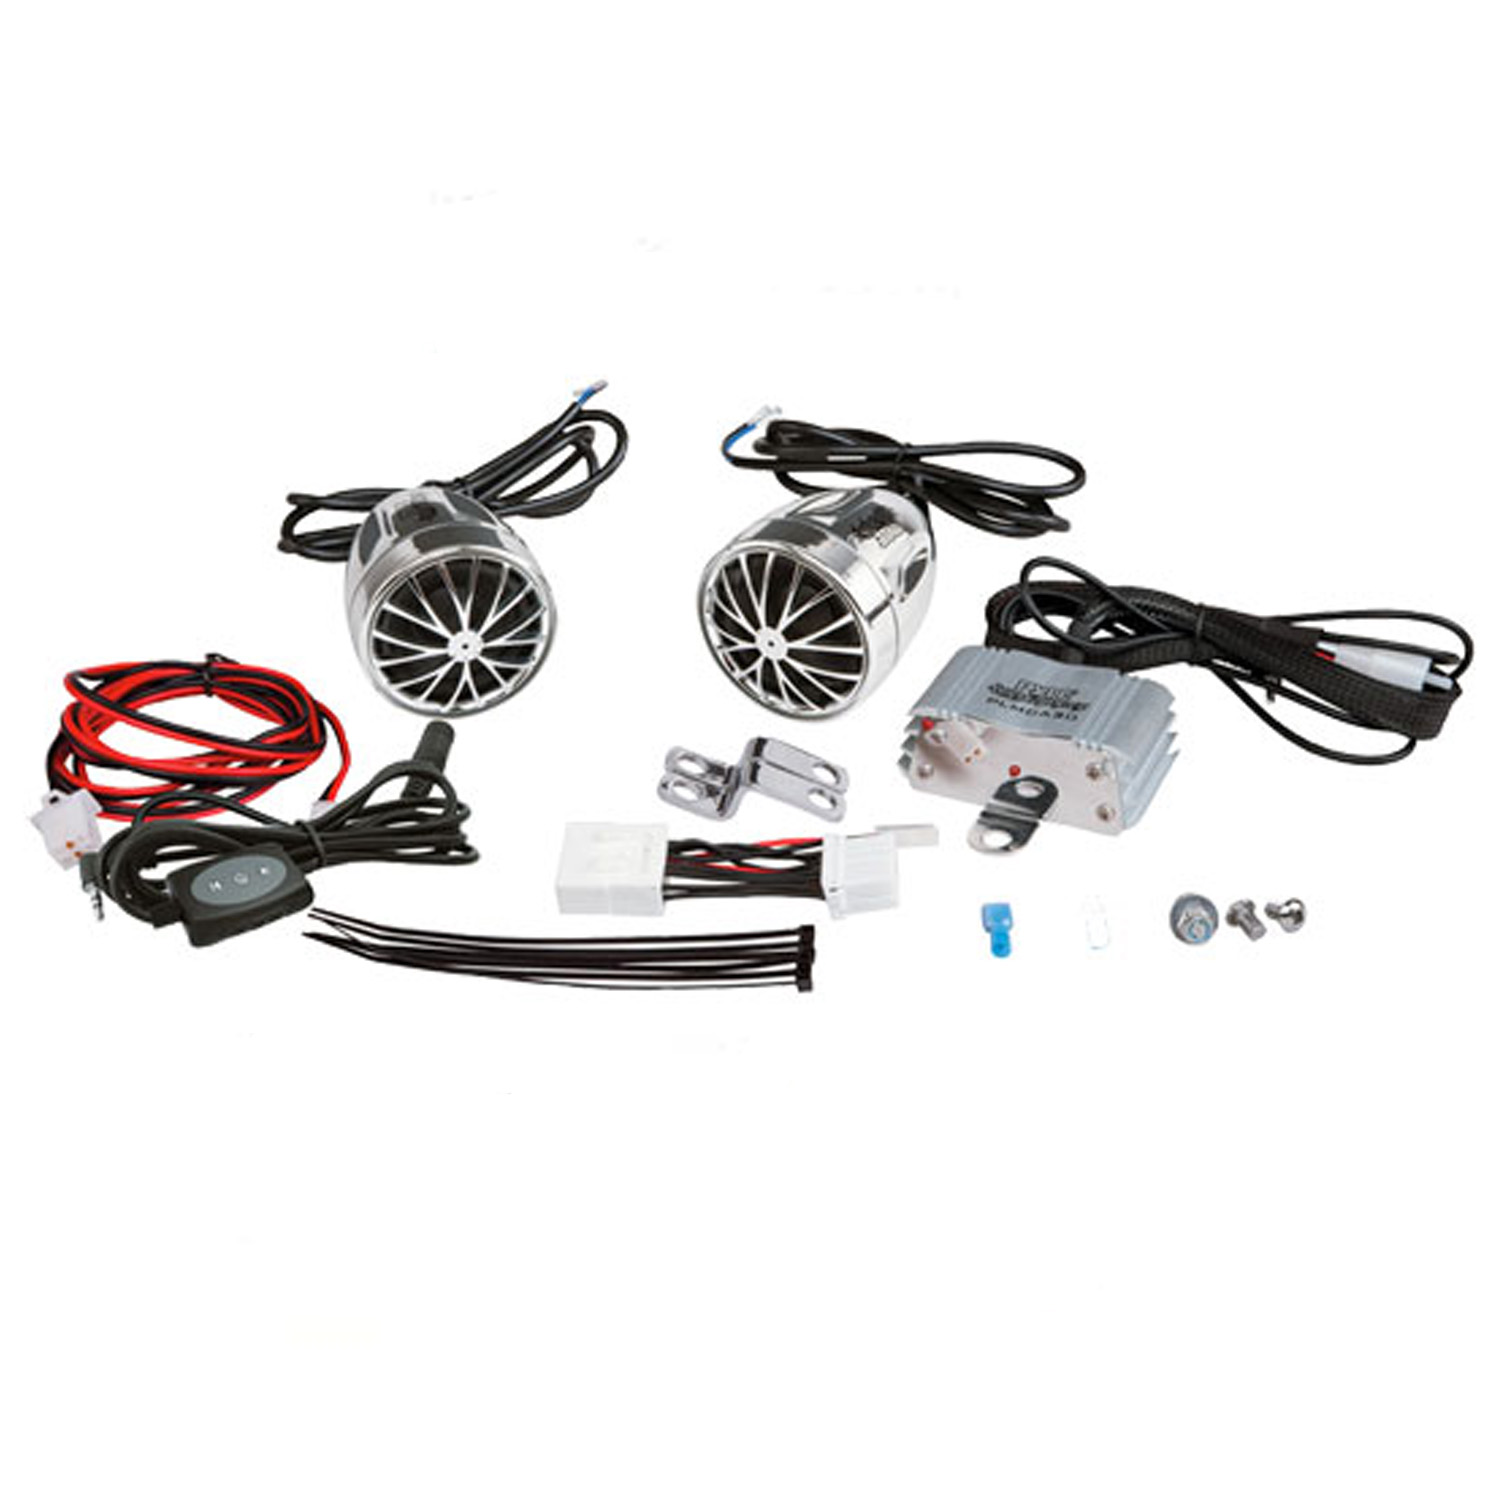 PYLE PLMCA31BT - 400-Watt Motorcycle Weatherproof Bluetooth Sound System with Speakers, Amplifier and 3.5mm iPod Input